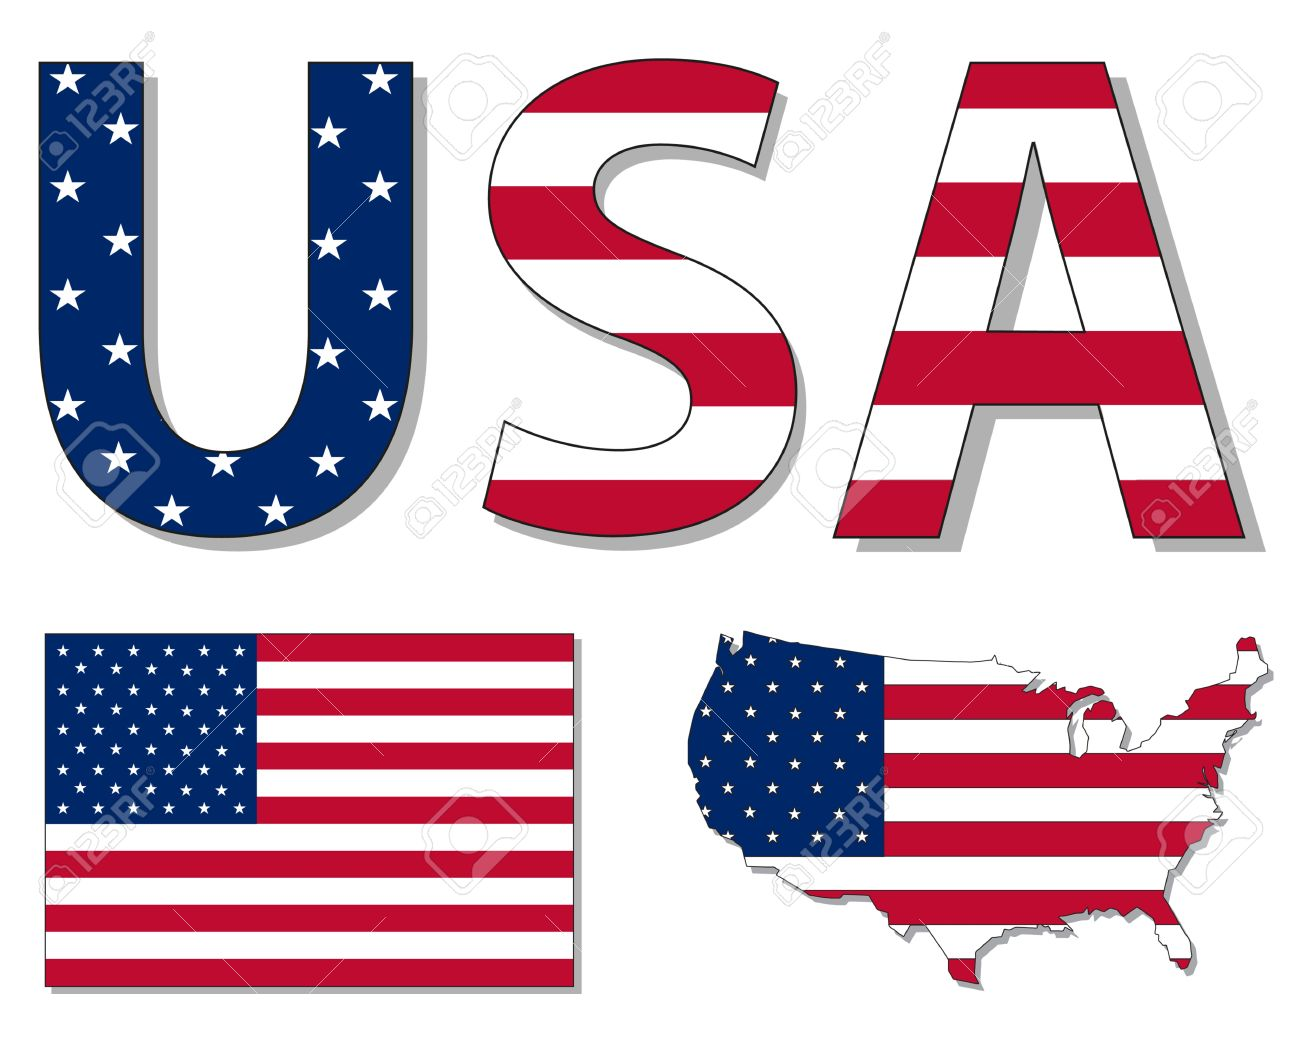 Us map flag clipart clip art royalty free stock Outline Map Of USA Filled With USA Flag Royalty Free Cliparts ... clip art royalty free stock